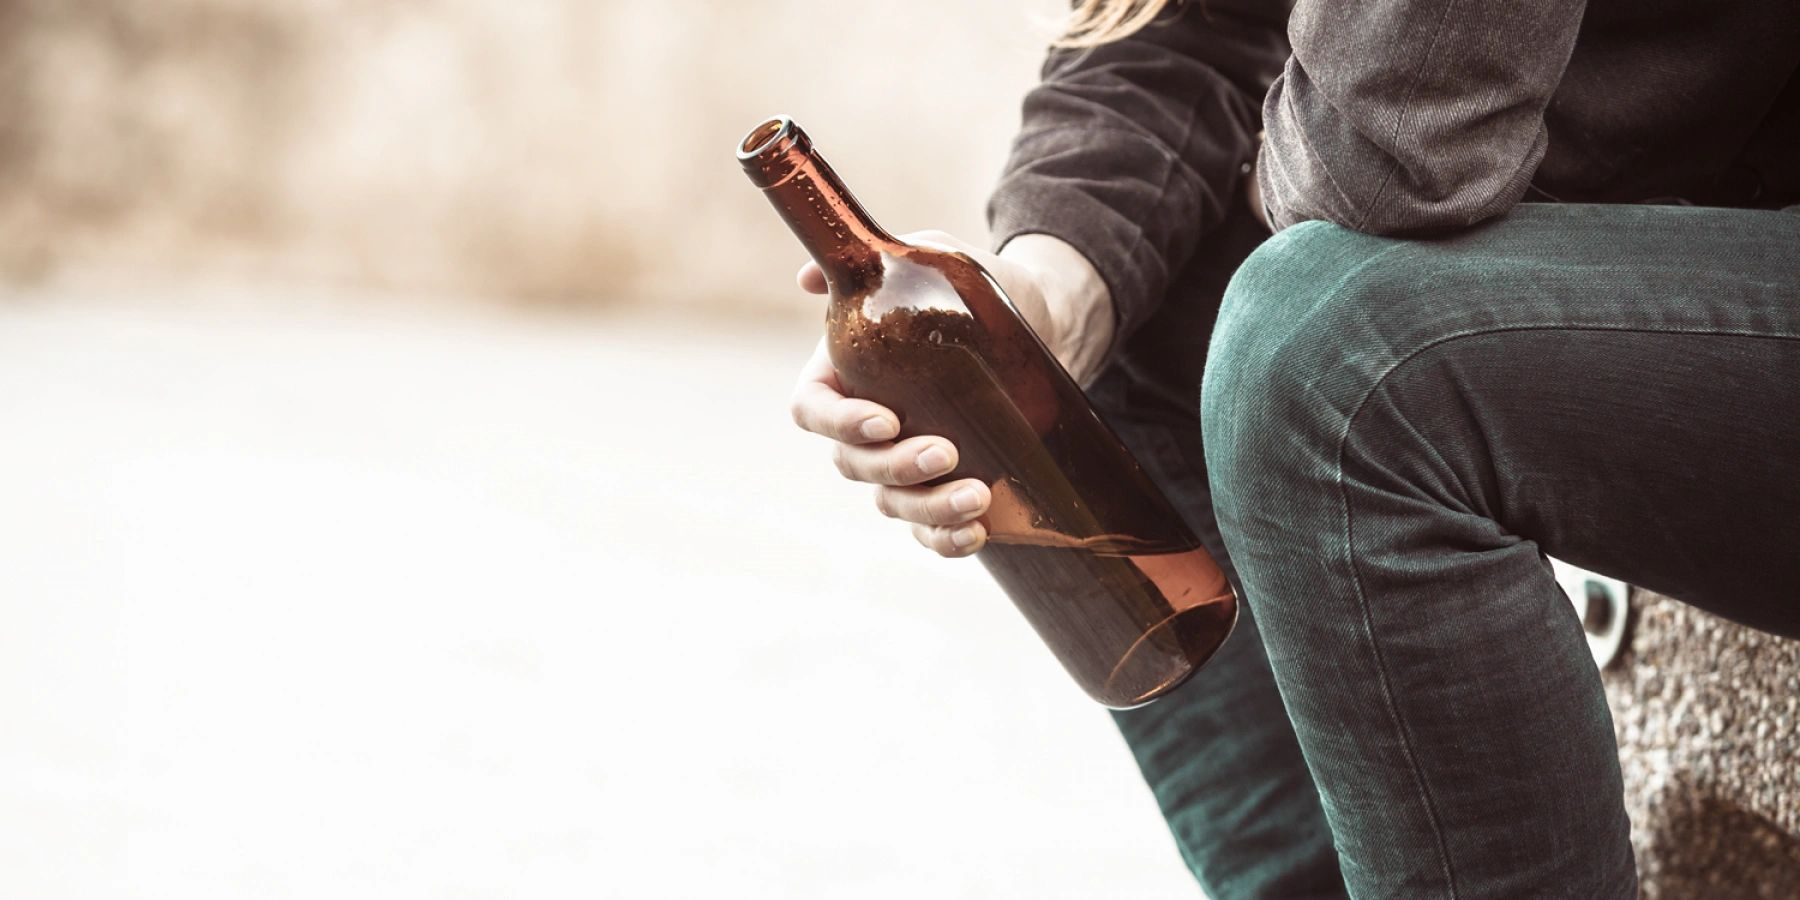 It is not easy to live with a person whose drinking or drug use is causing problems.